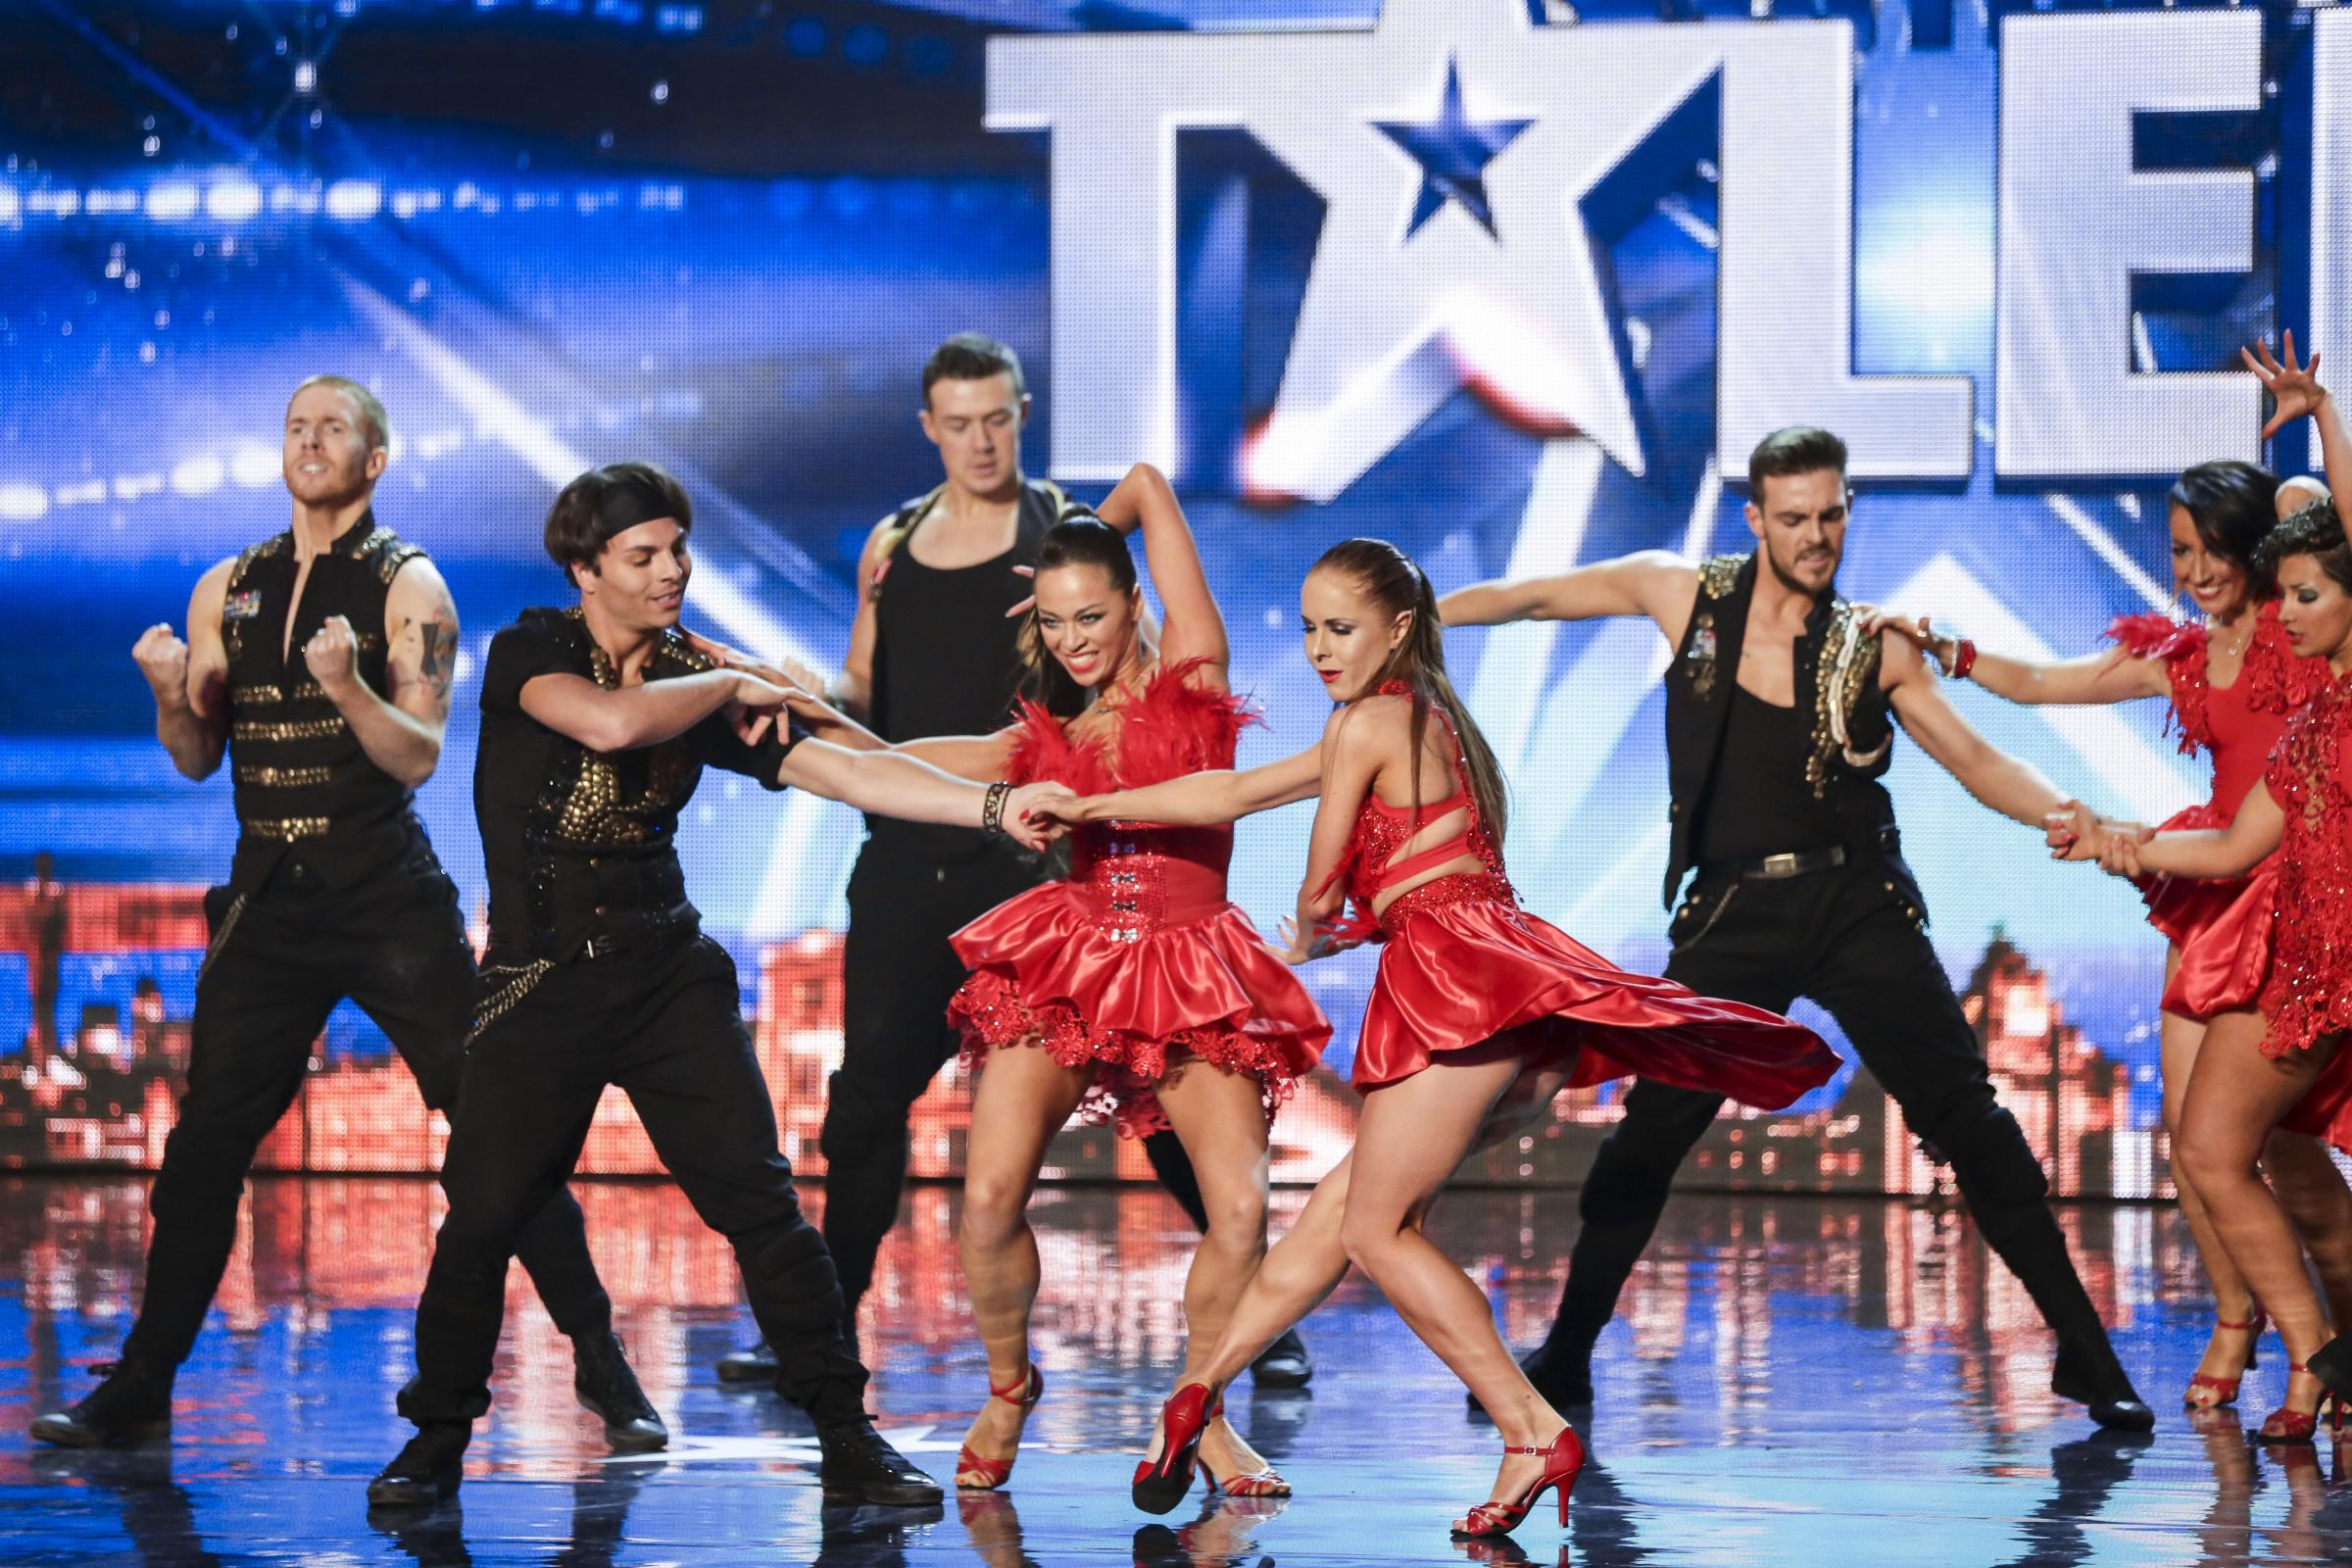 Dancer Kai misses out on Britain's Got Talent Glory